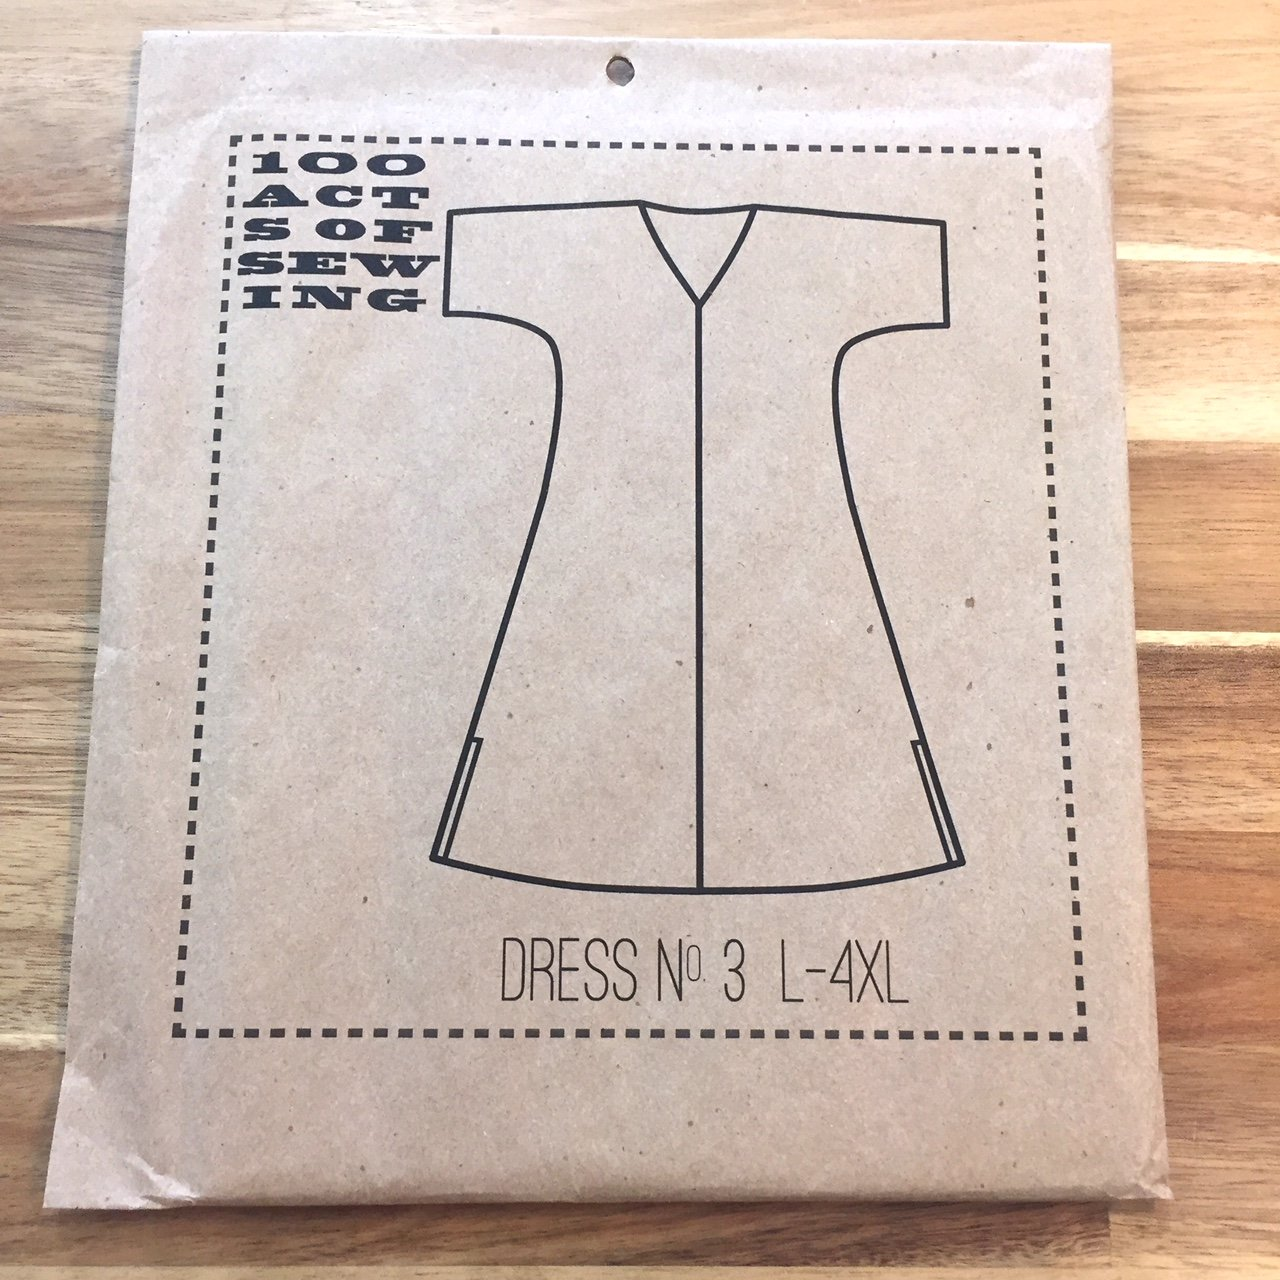 Dress no.3 (L-4X) - 100 Acts of Sewing - Sonya Philip